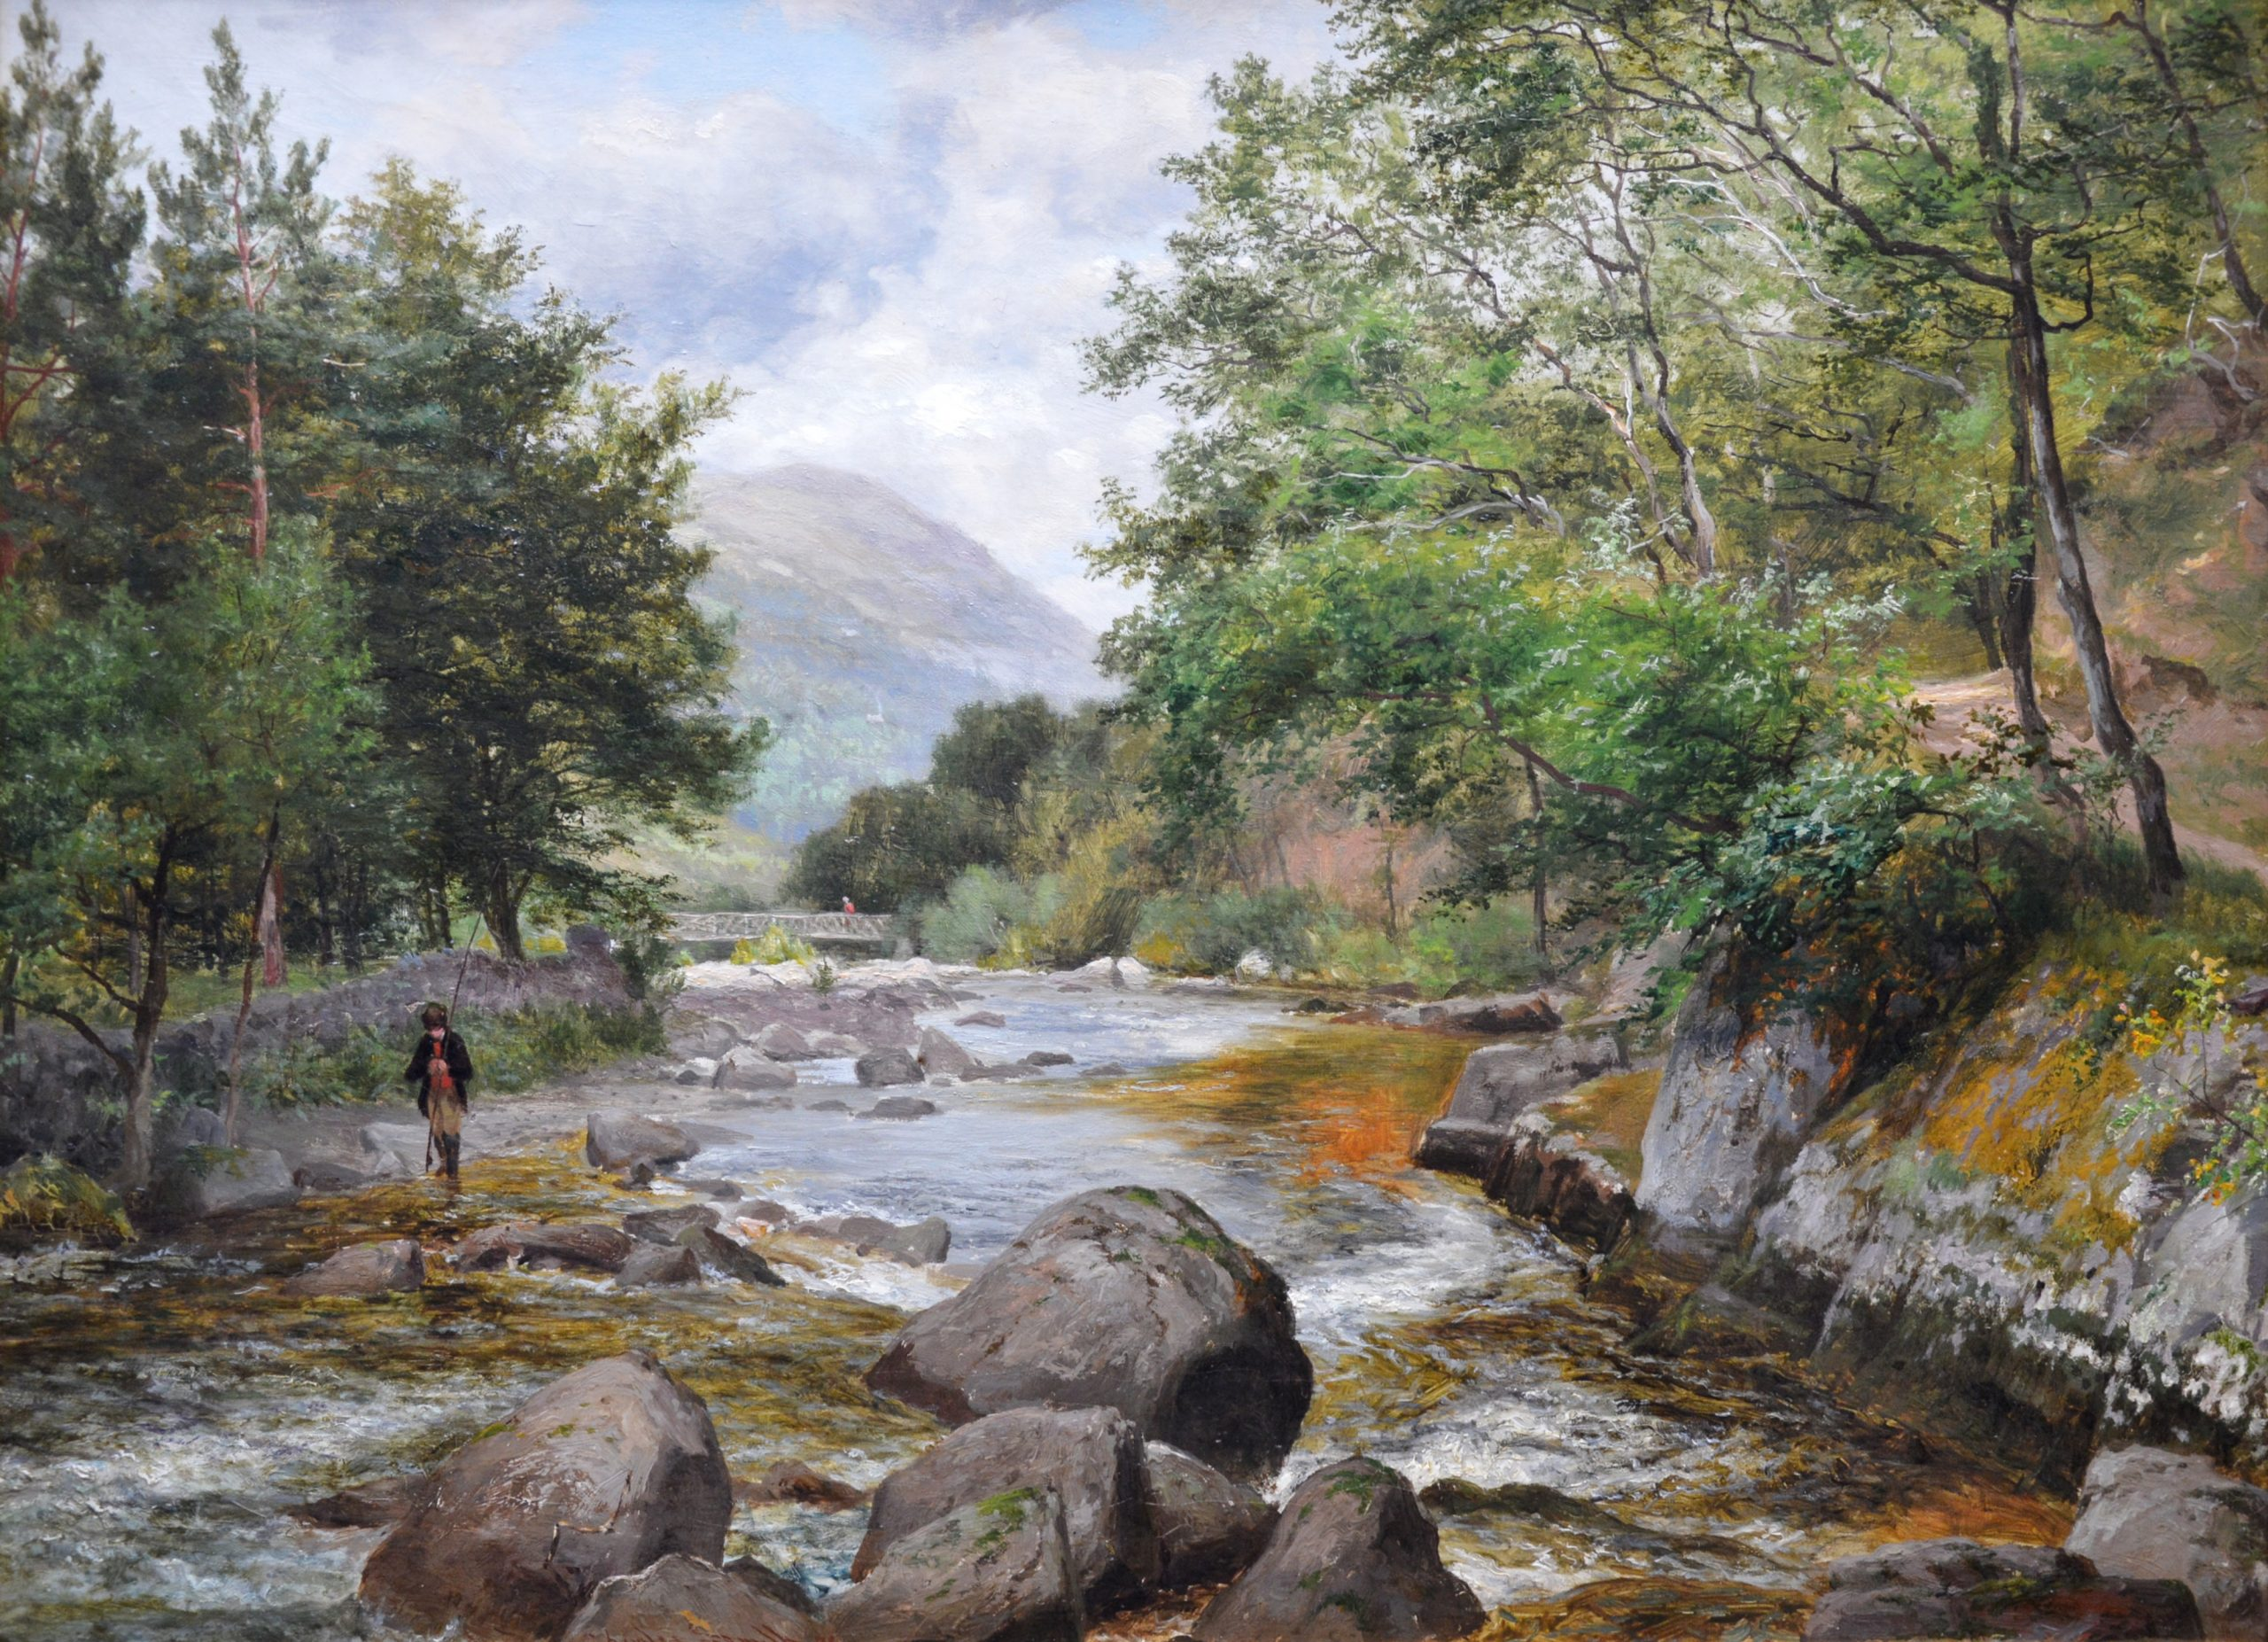 On the Lyn, North Devon - 19th Century River Landscape Oil Painting Image